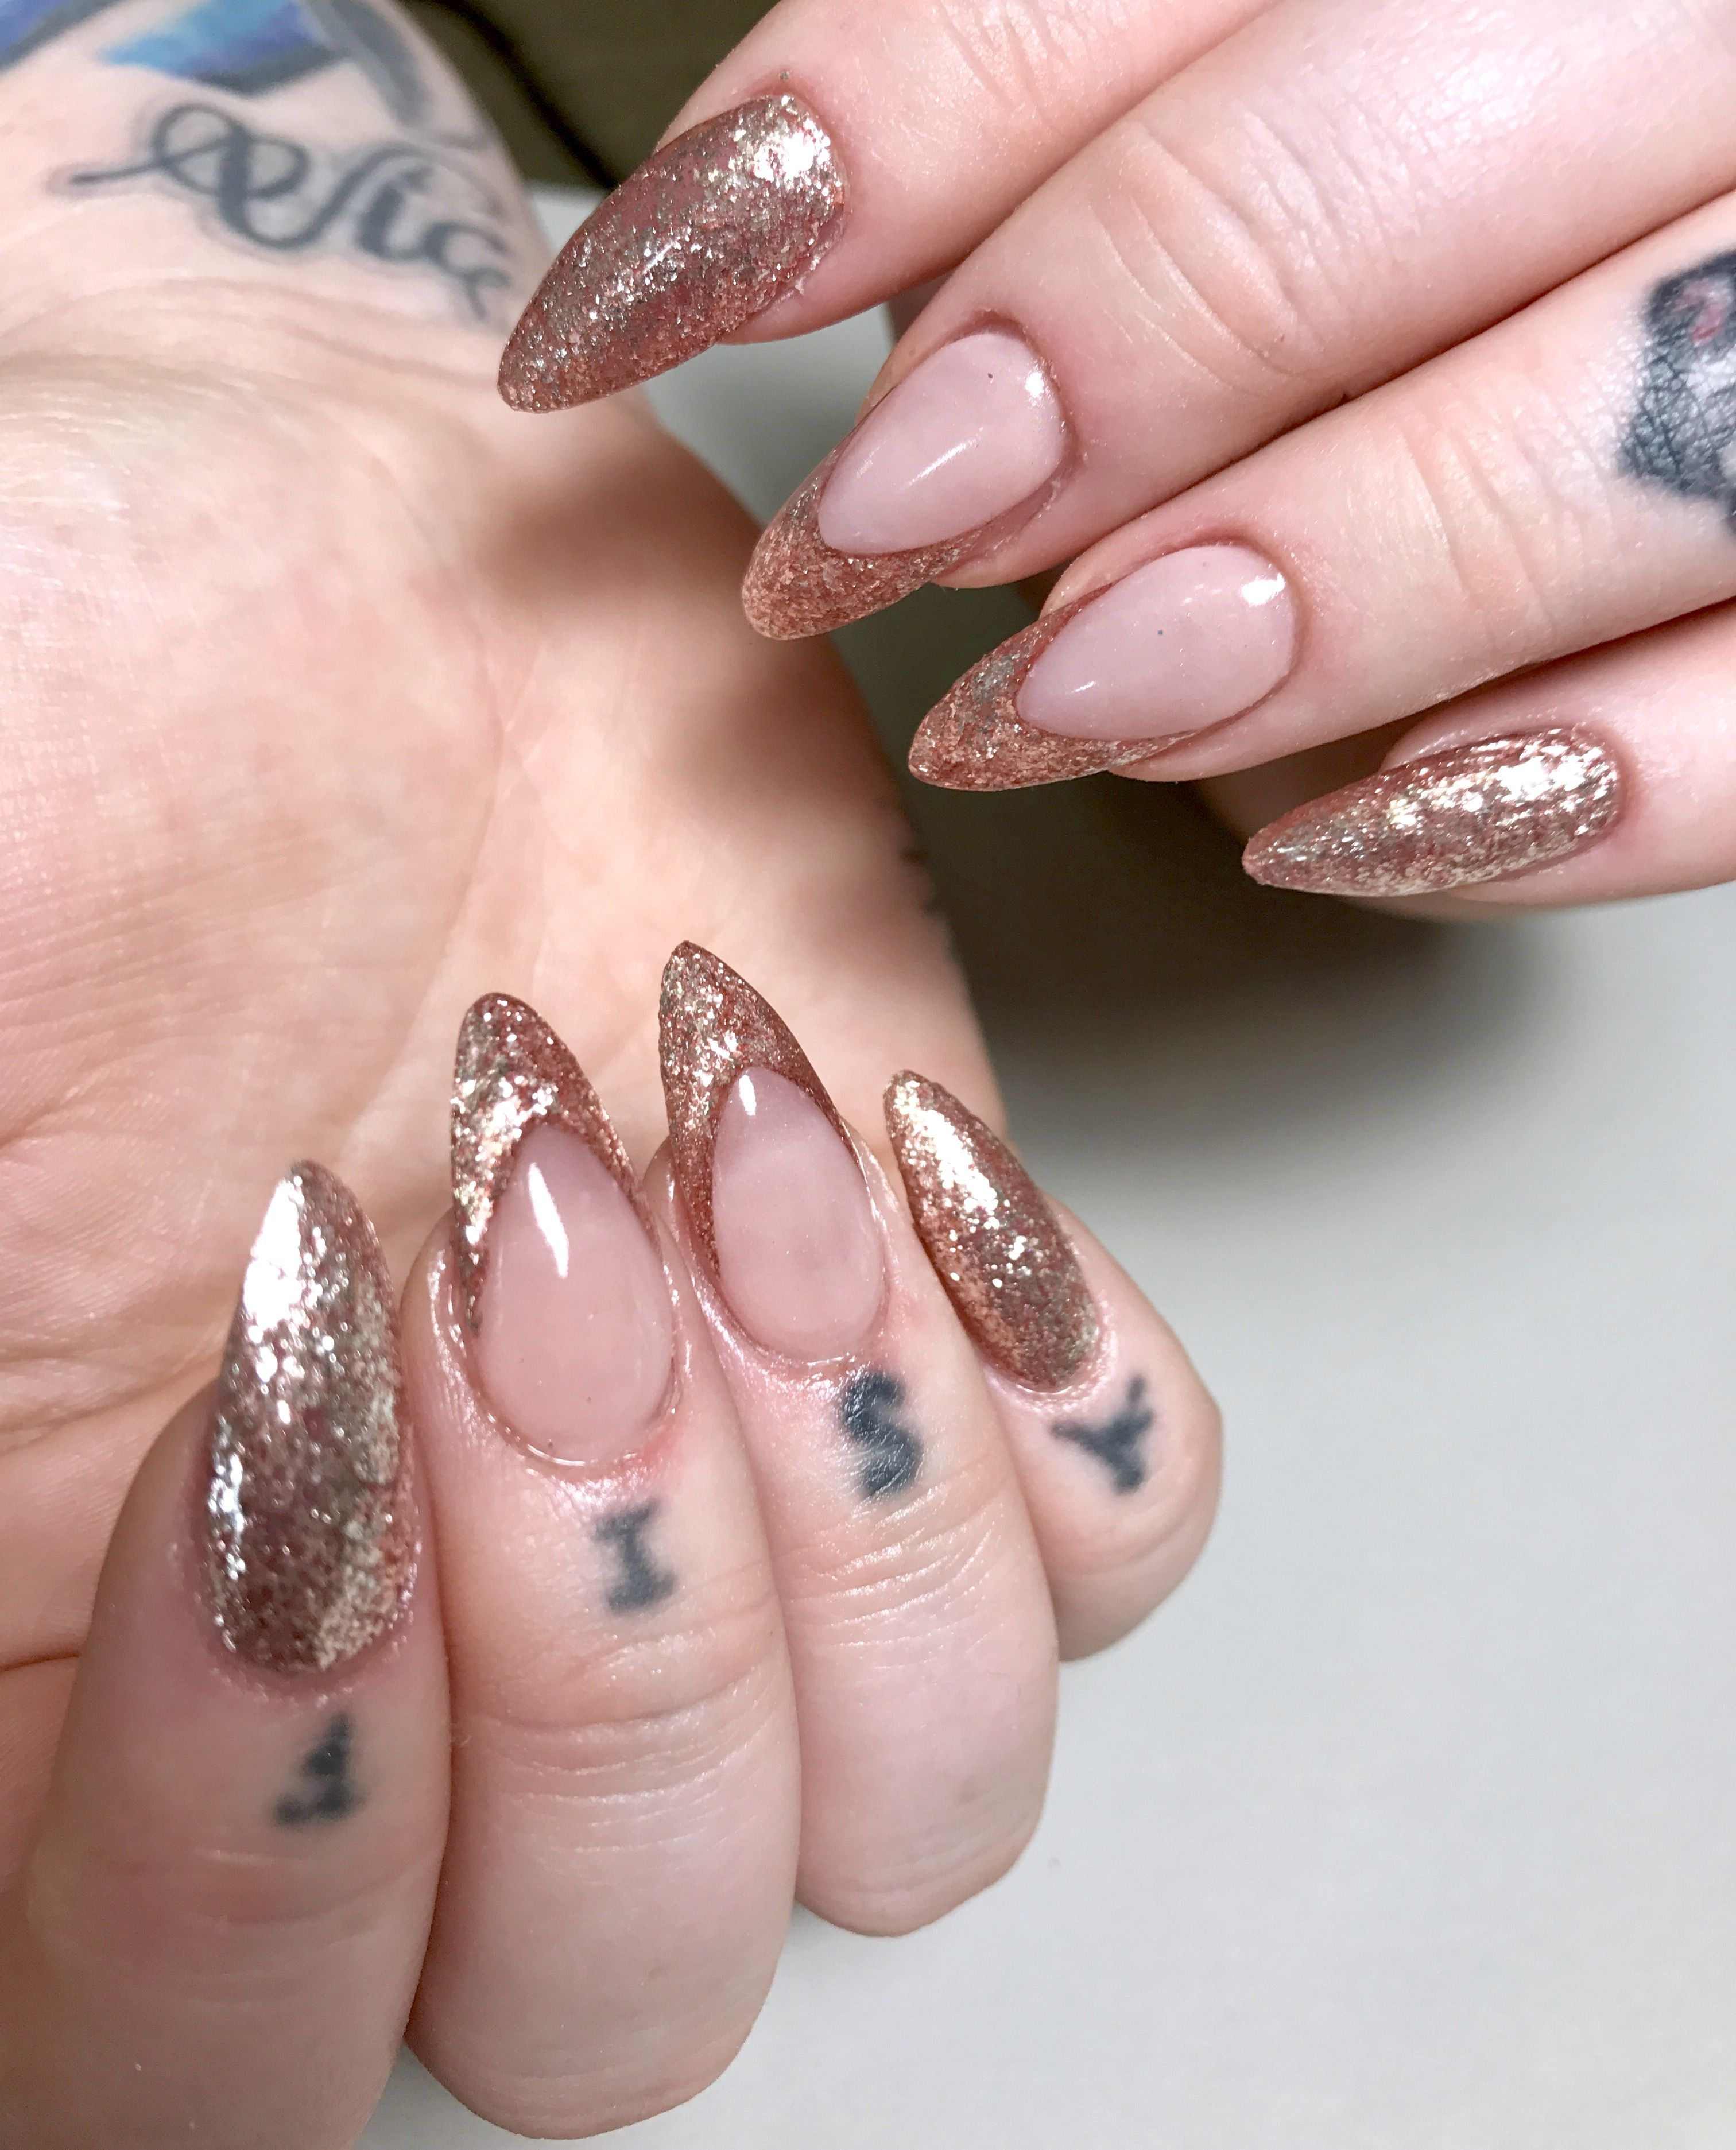 Pink Neutral Nails In An Almond Shape With Glitter Embedded Or